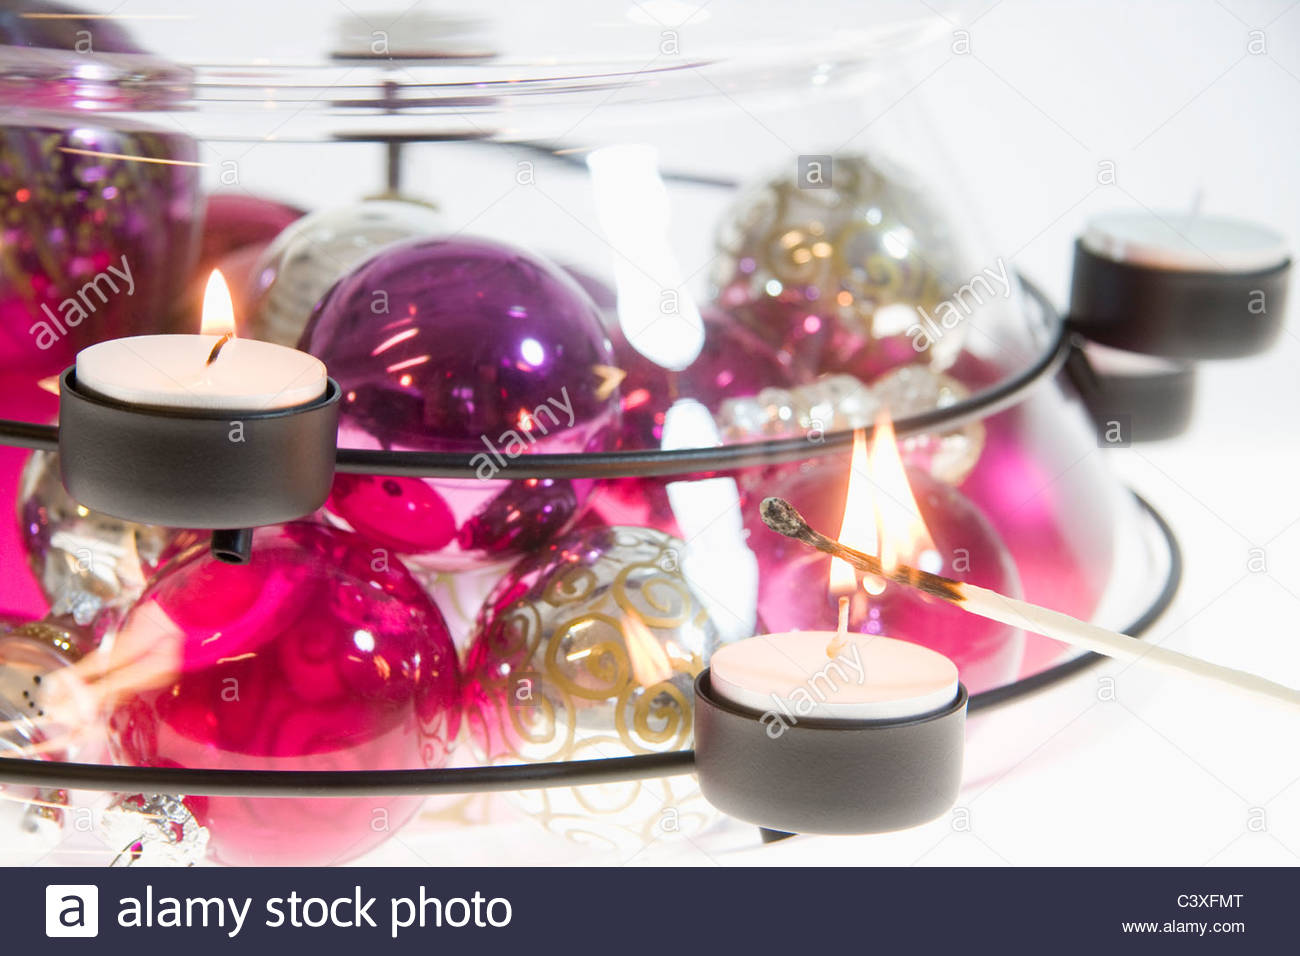 Lighting Candle in Candlestick Holder - Stock Image